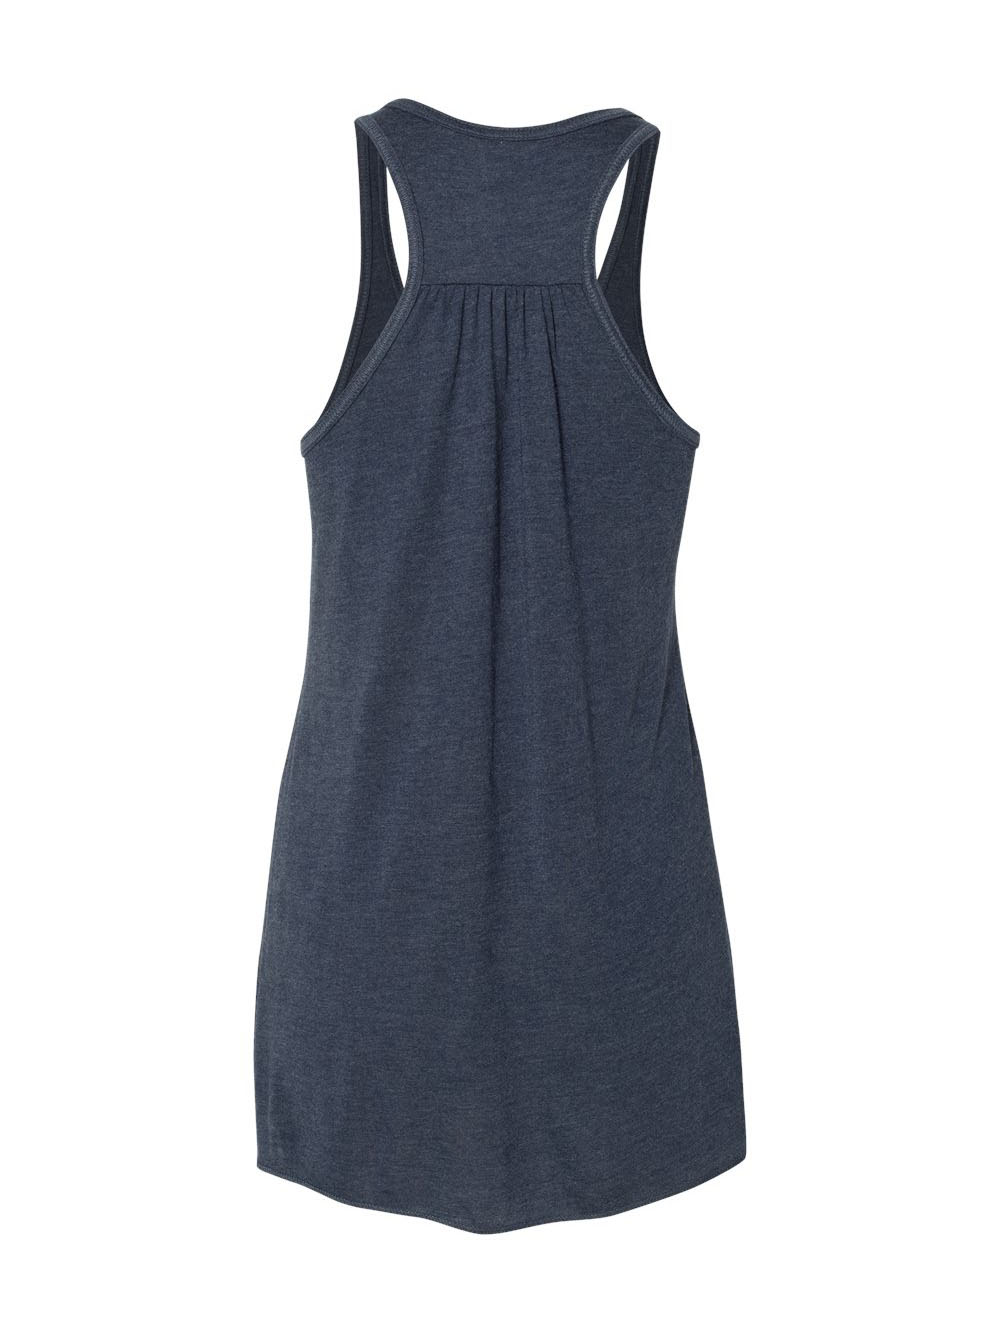 Bella-Canvas-Women-039-s-Flowy-Racerback-Tank-8800 thumbnail 46